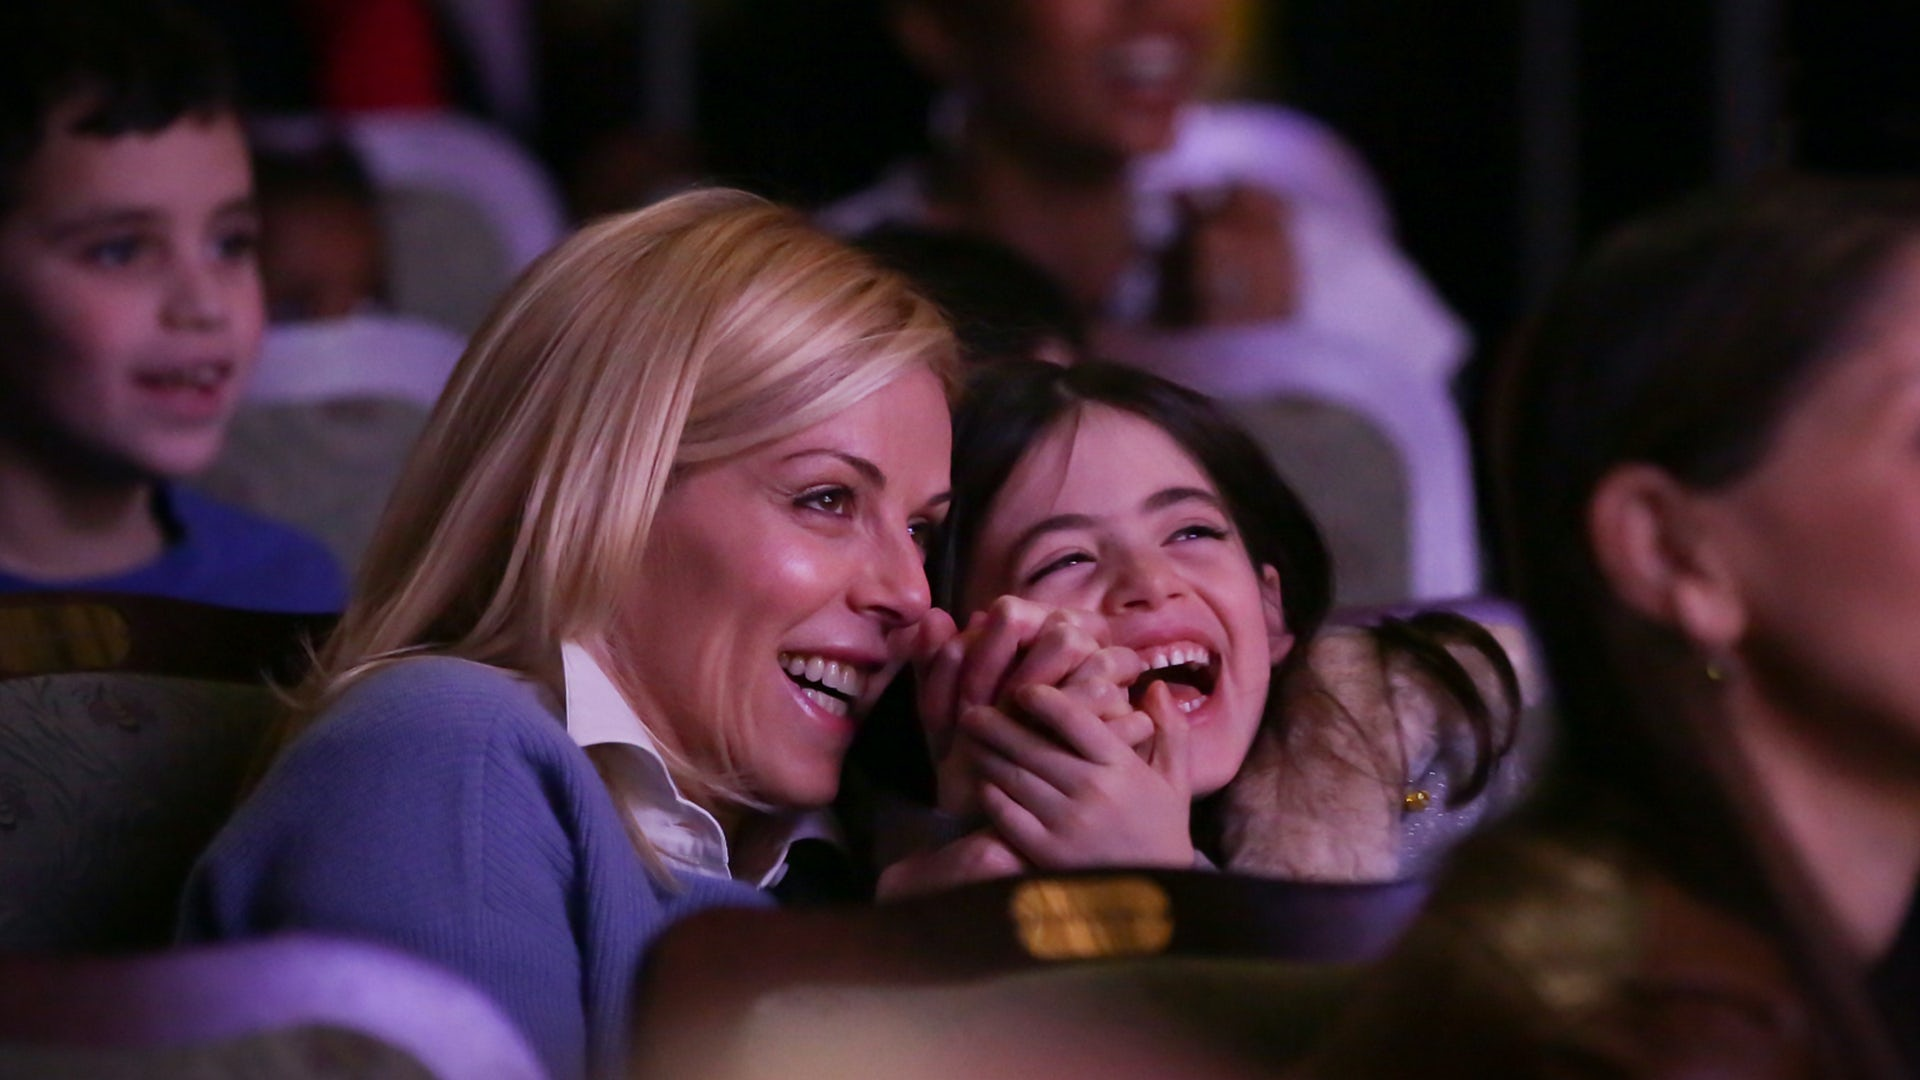 A Mom and daughter react to a performance with smiles and laughter.